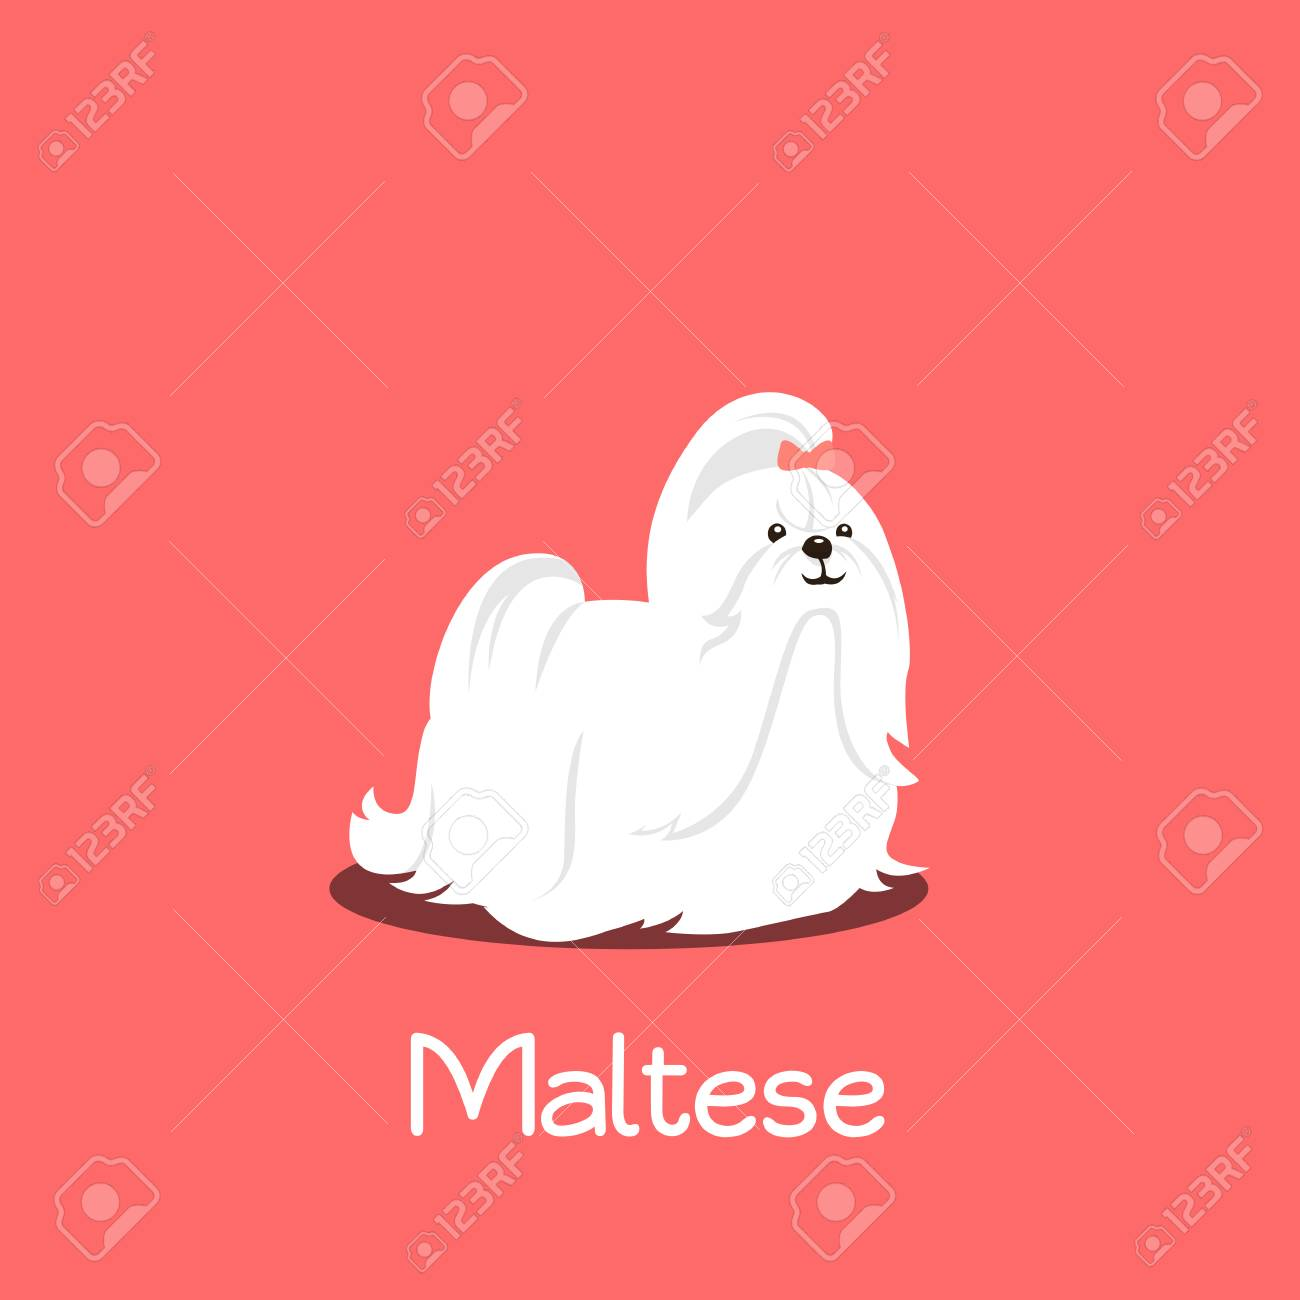 hight resolution of an illustration depicting a cute maltese dog cartoon vector stock vector 81879630